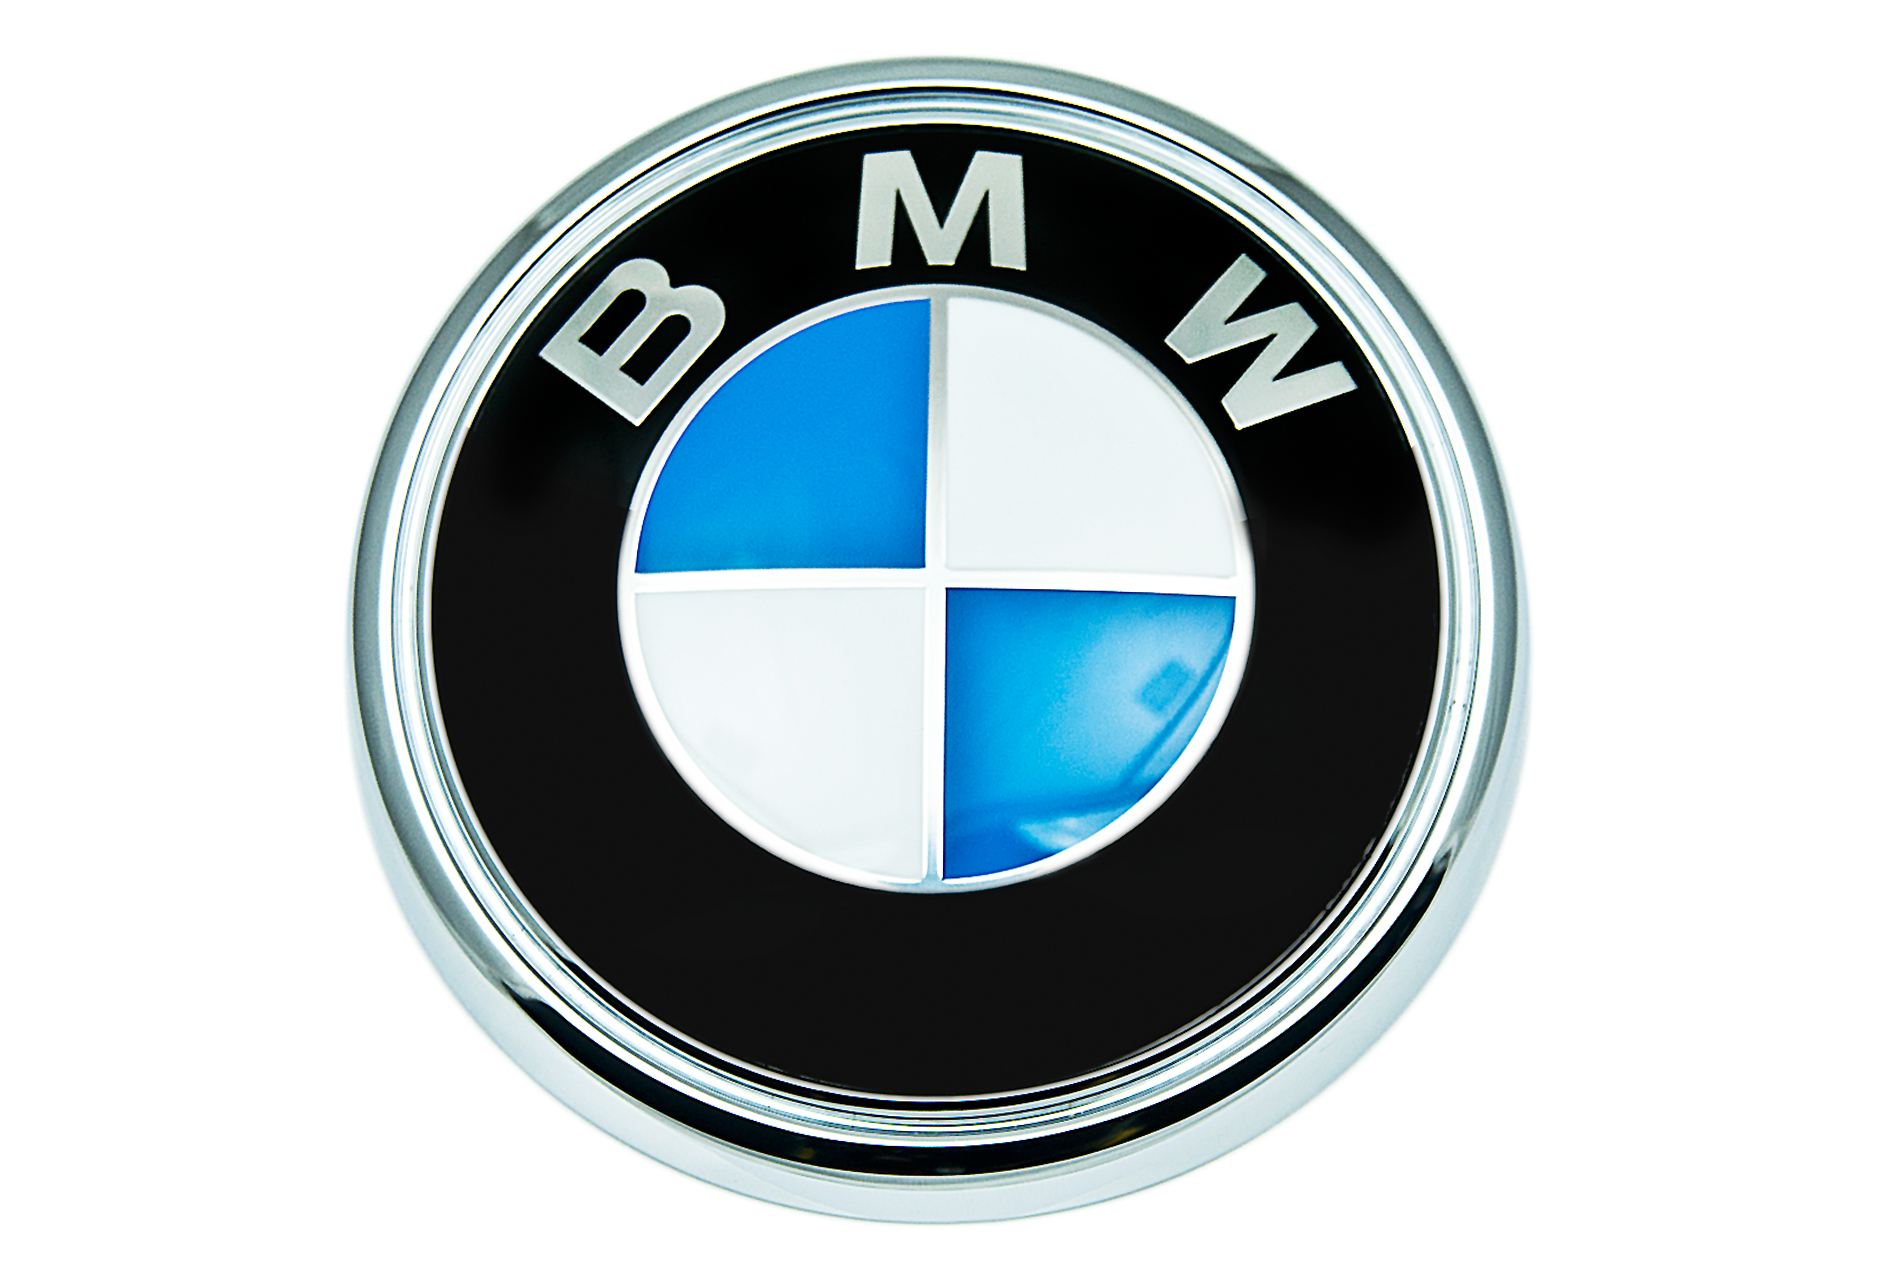 Emblem Rear on Bmw X3 Light Bulbs